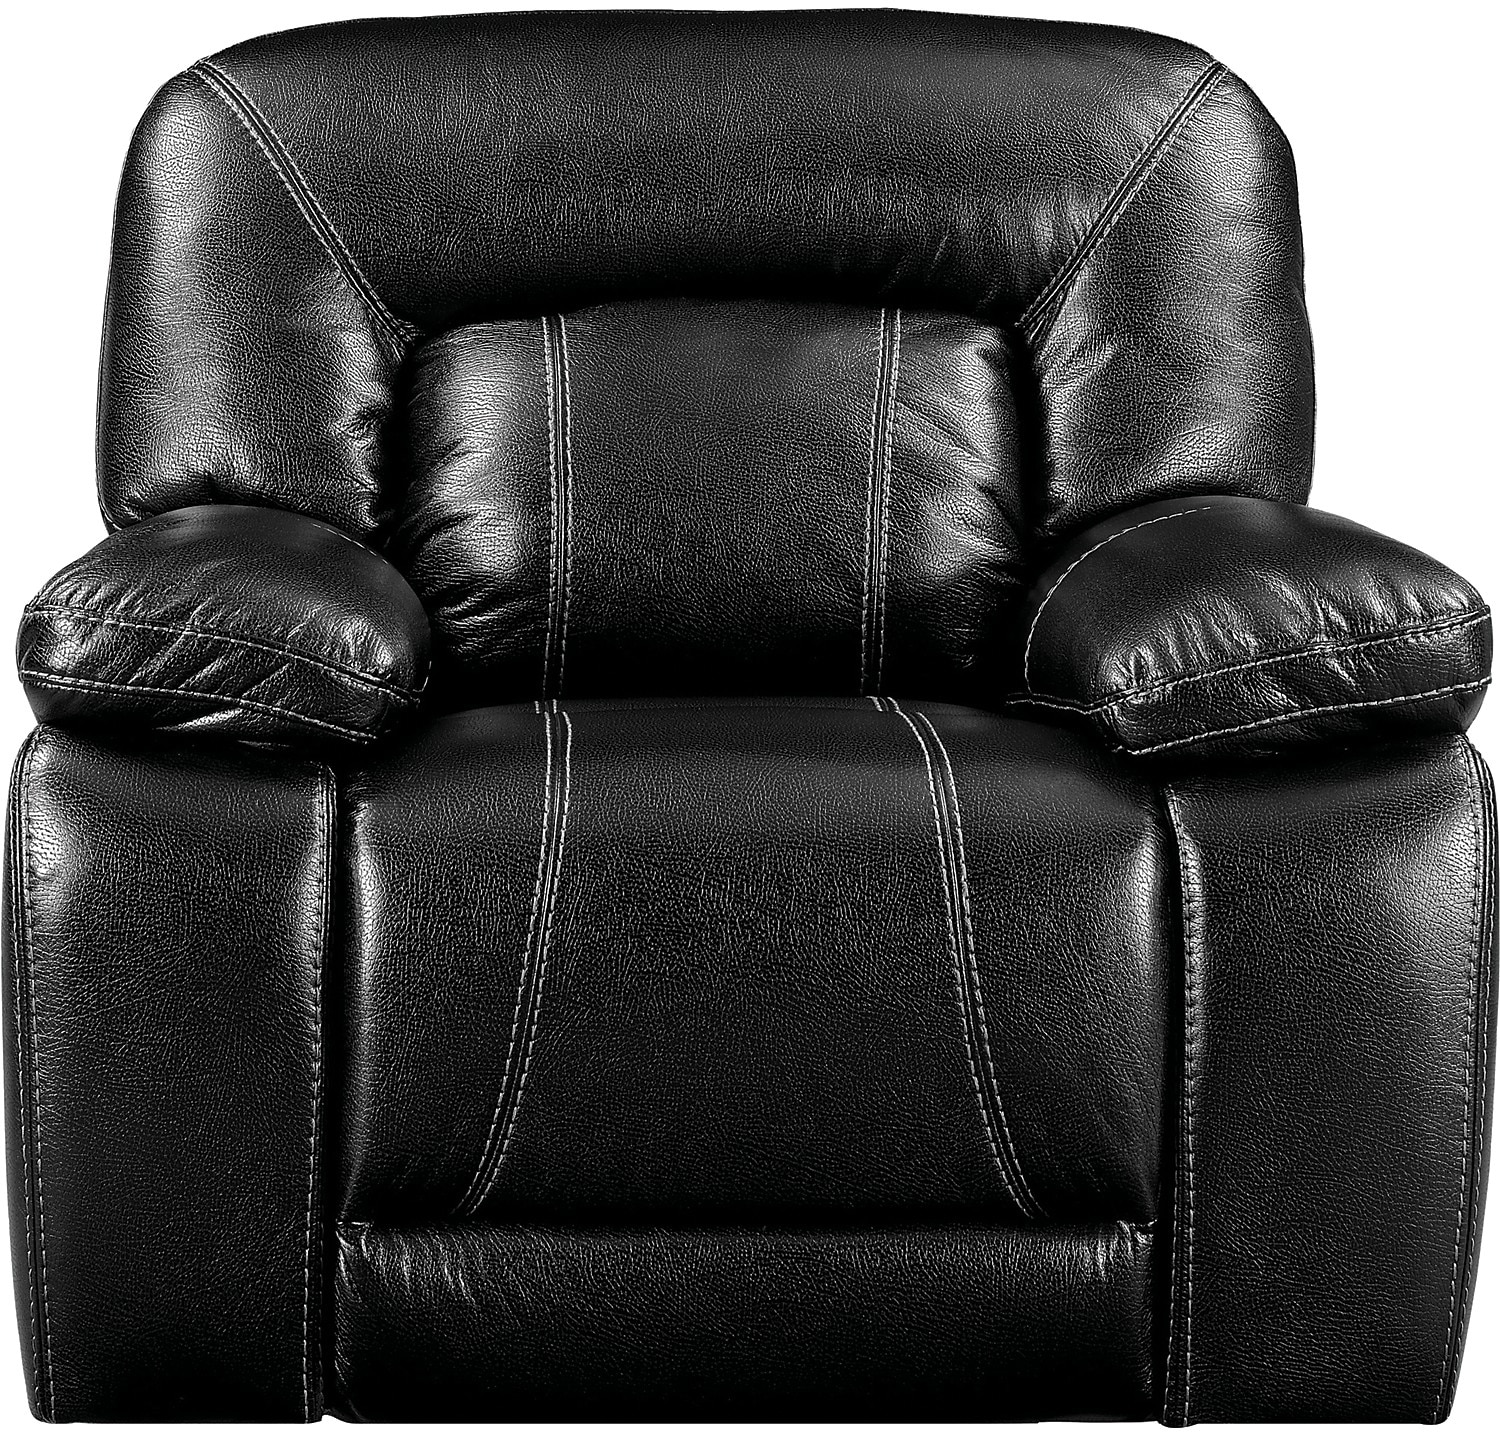 Living Room Furniture - Kimba Leather-Look Fabric Reclining Chair – Black